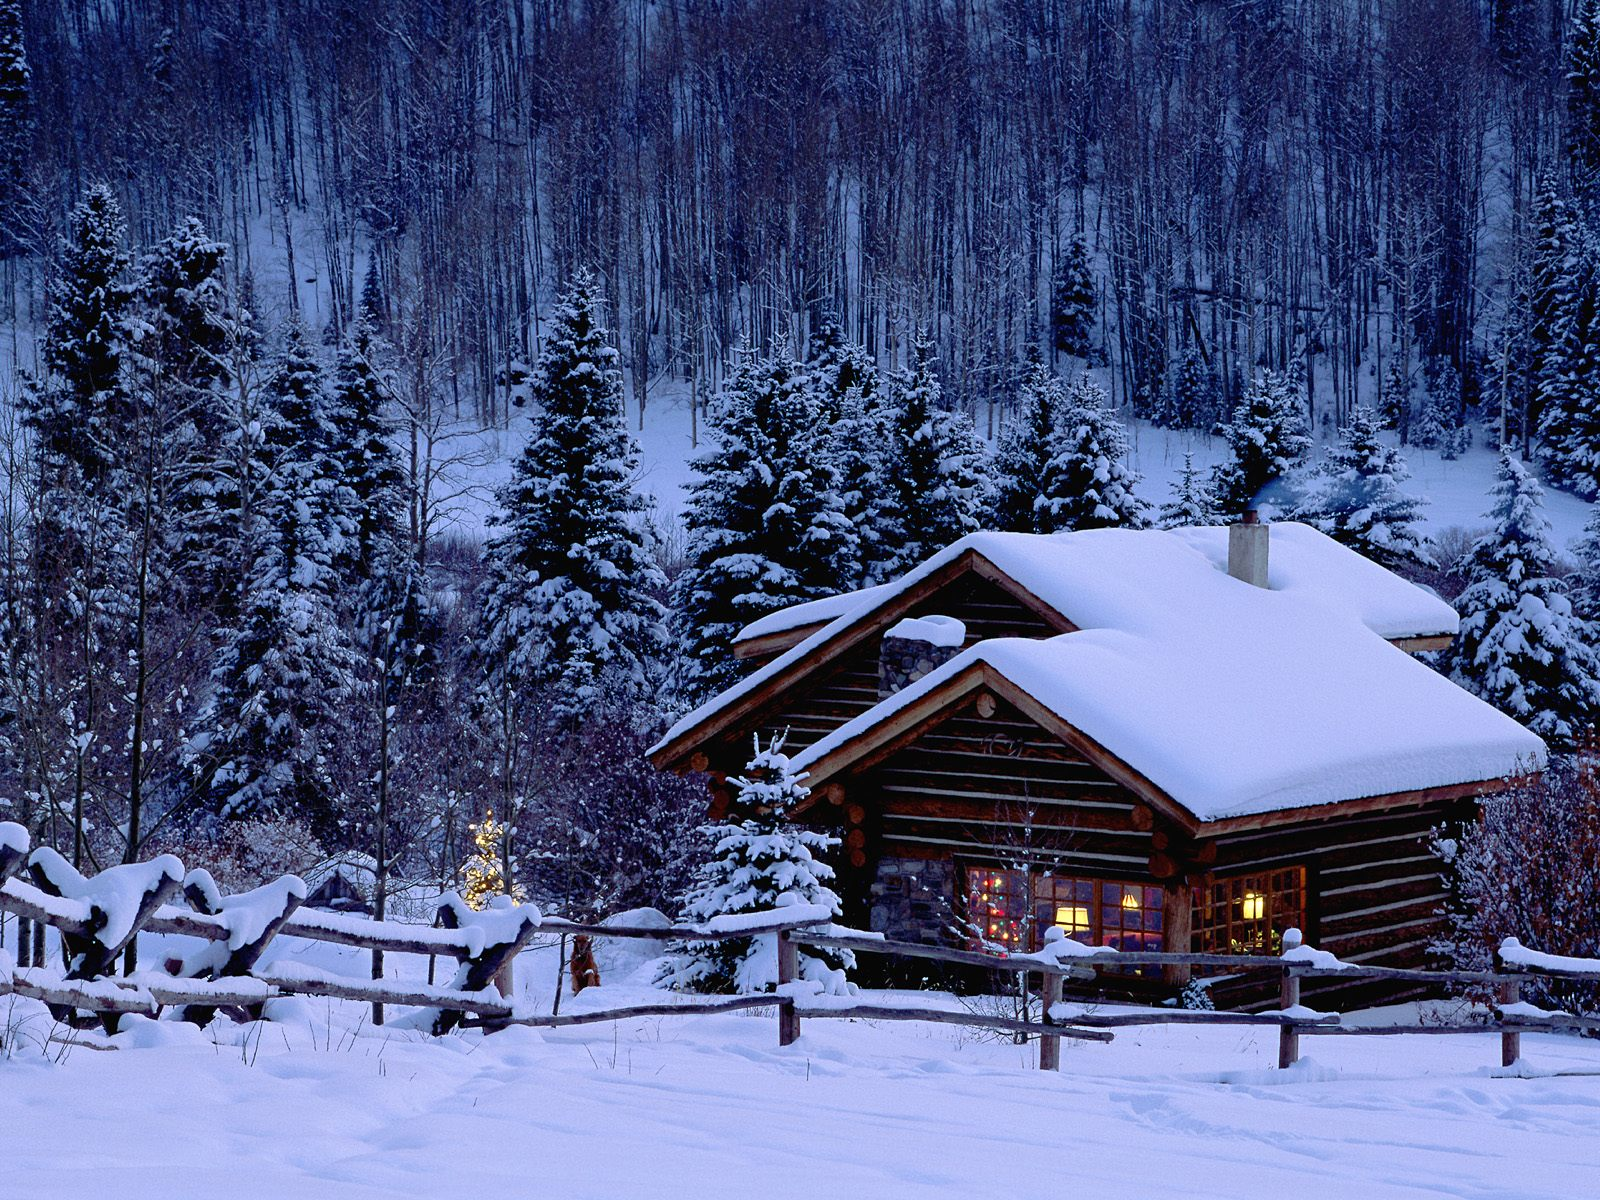 snow scenery full hd - photo #15